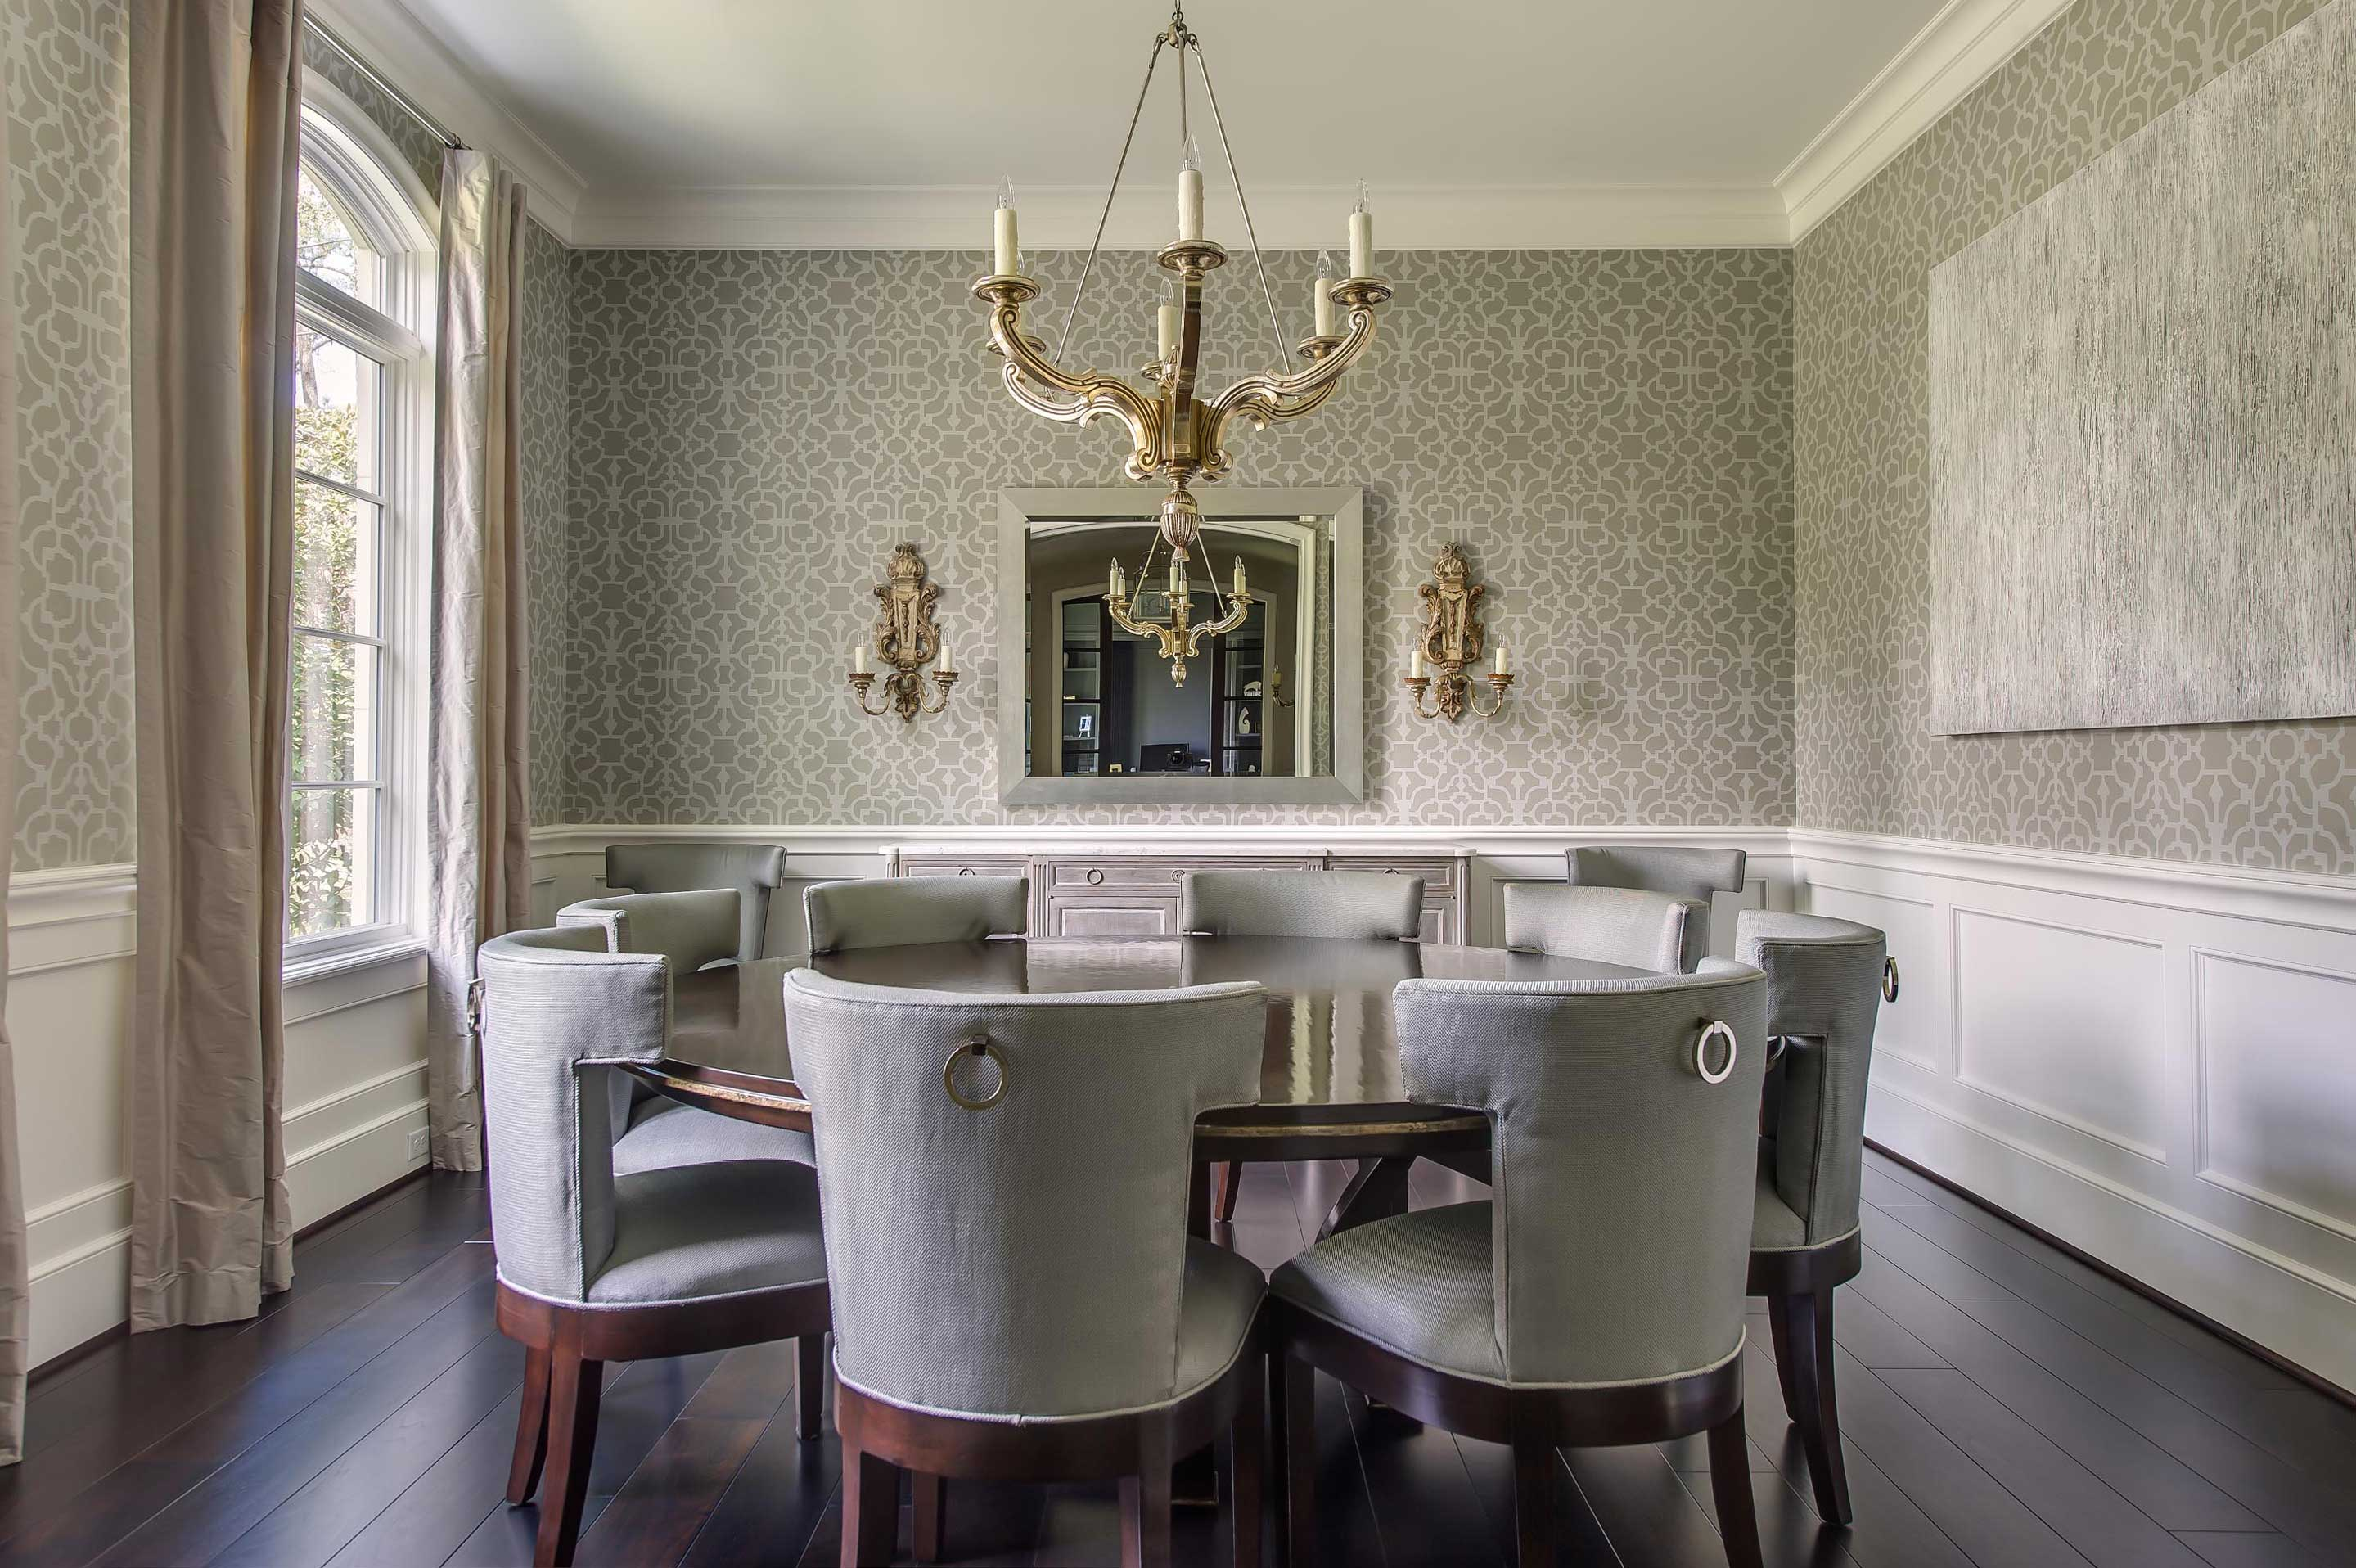 Formal Cherry Dining Room Sets Home About Portfolio Services Contact